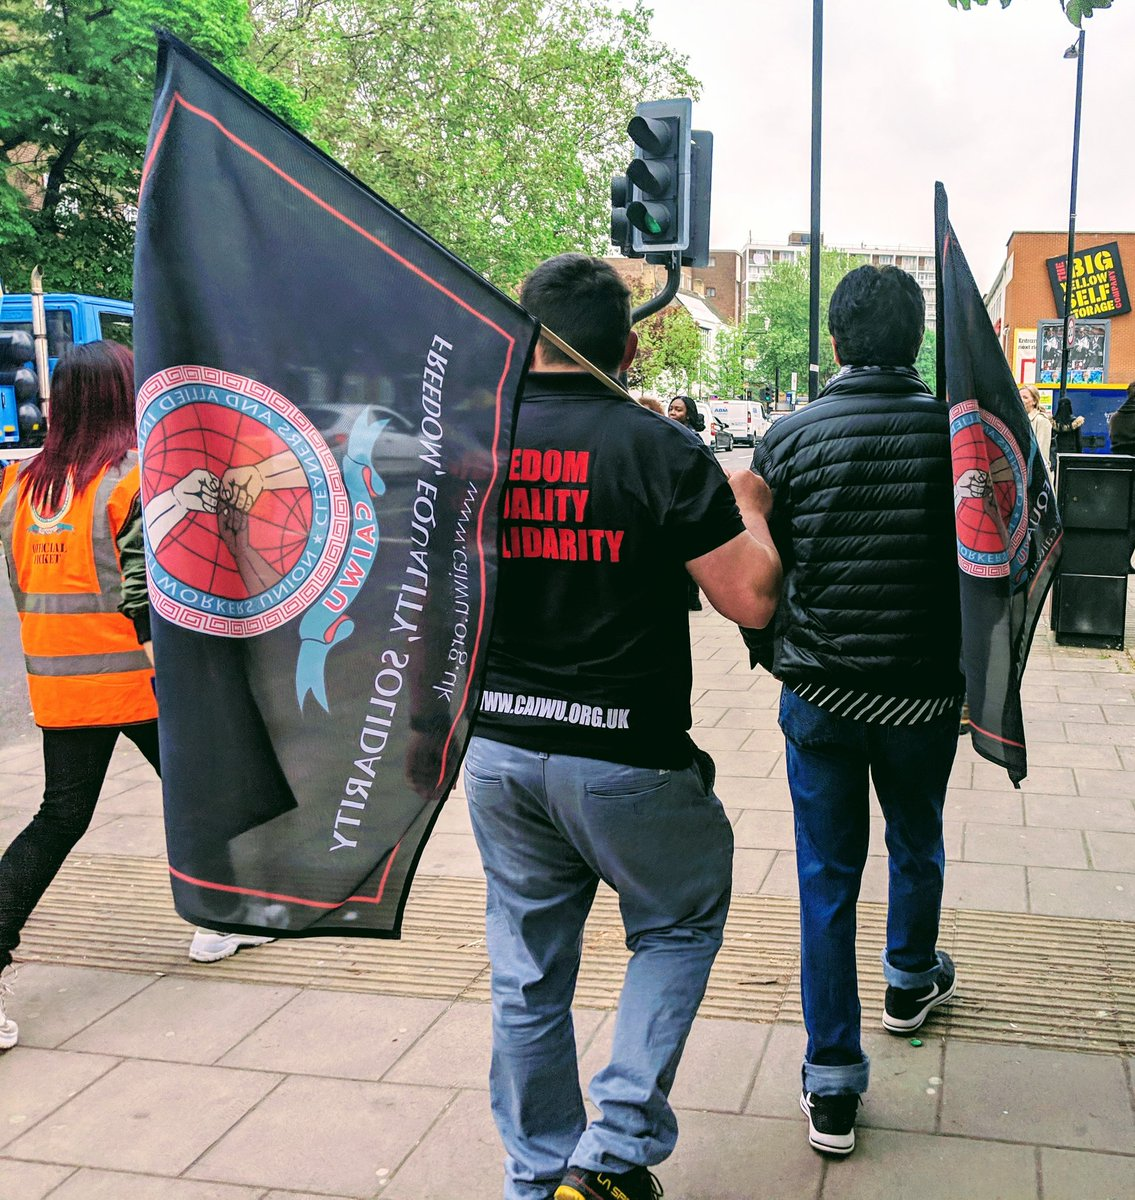 Now the @caiwuunion demo bus has reached the Lilian Baylis School in Kennington where cleaners are not paid a living wage. #MayDay